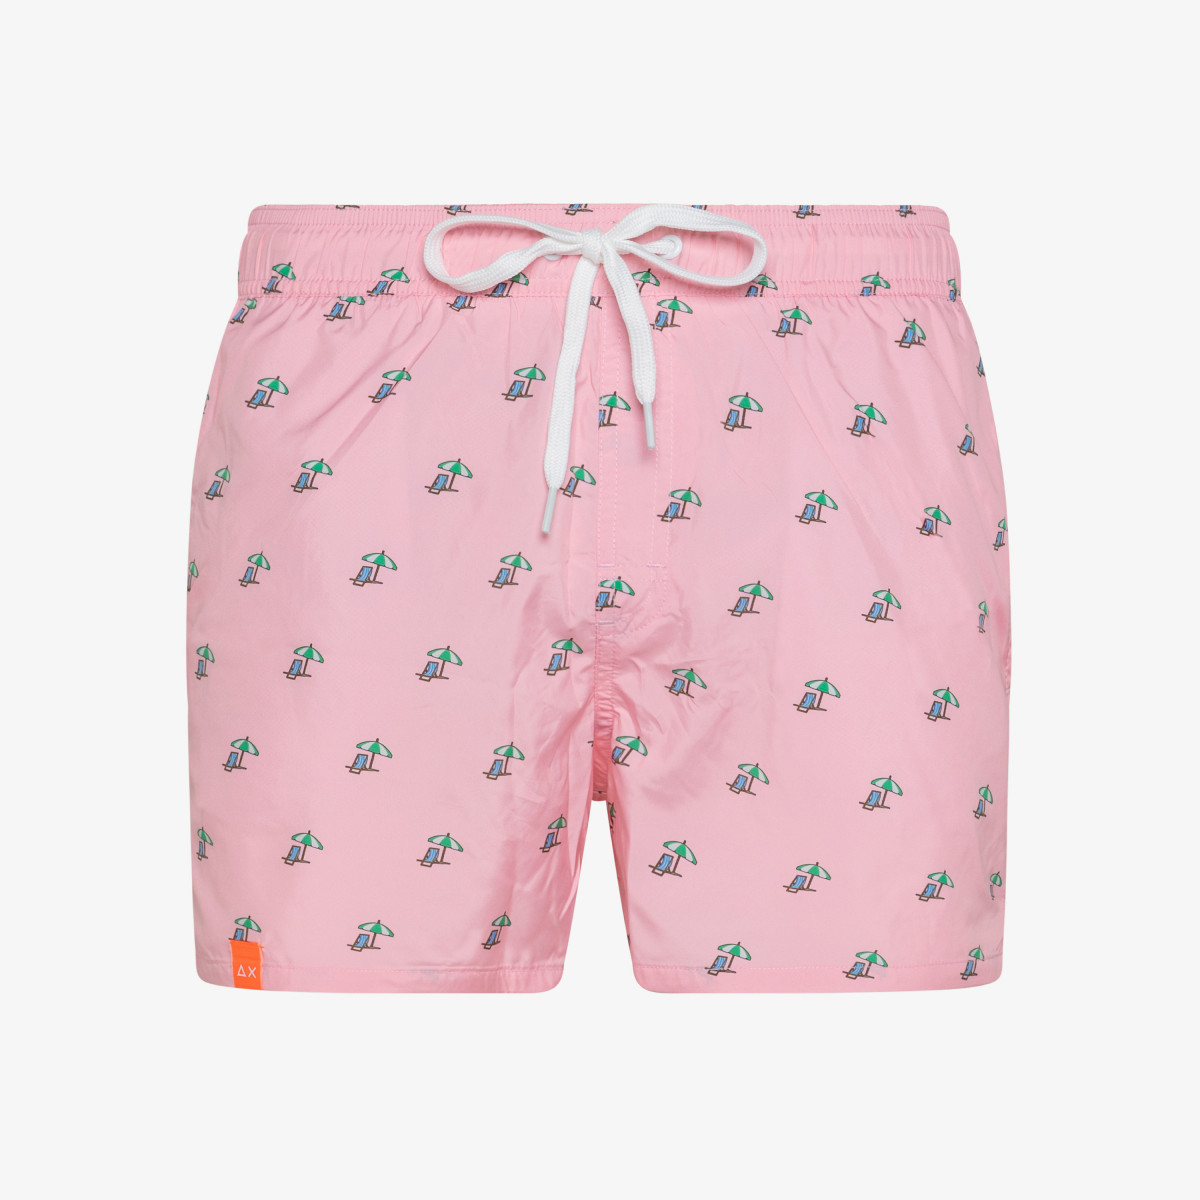 SWIM PANT MICROPRINT ROSA